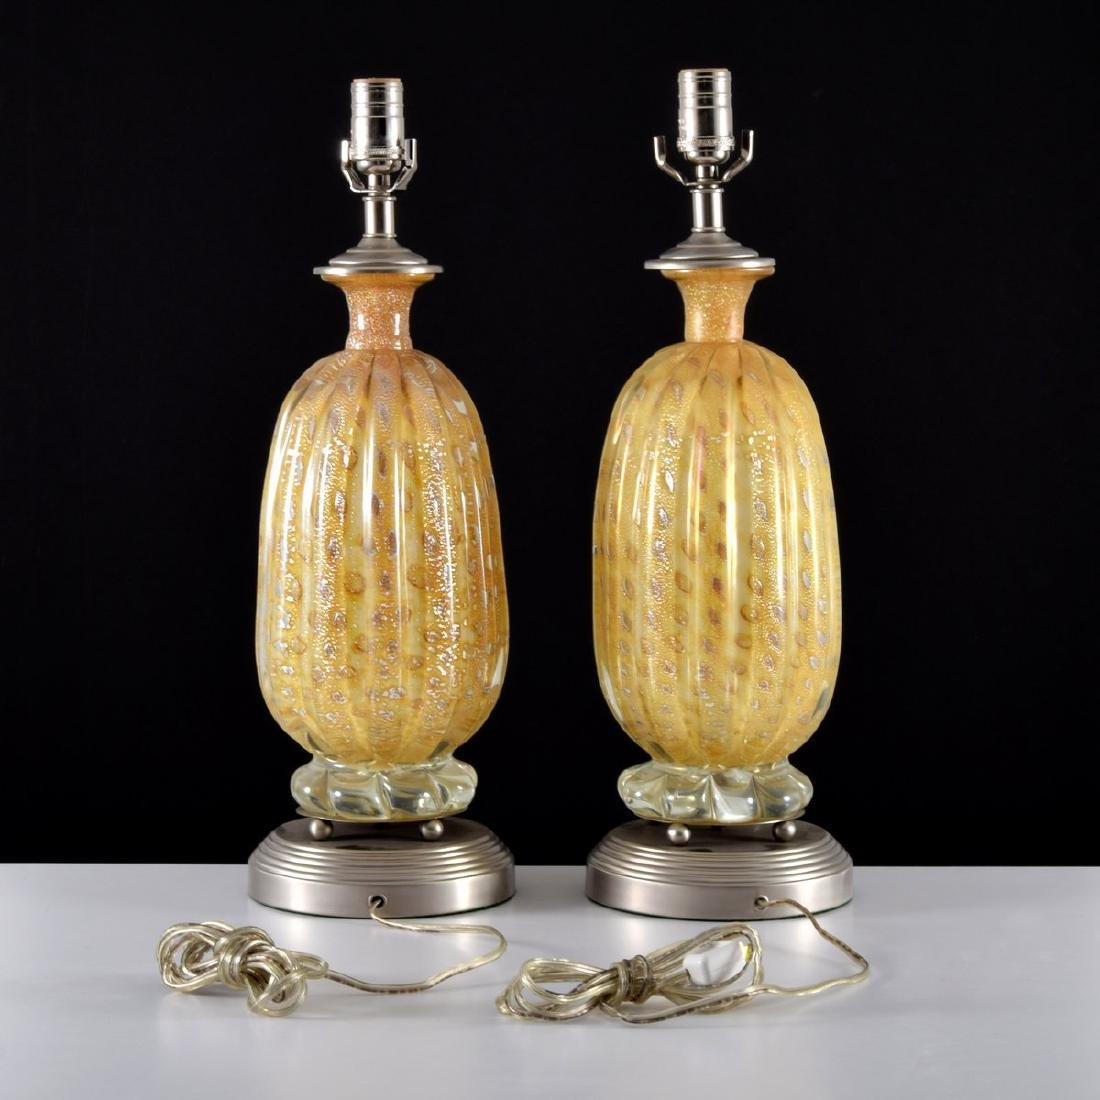 Pair of Murano Lamps, Manner of Barovier & Toso - 5